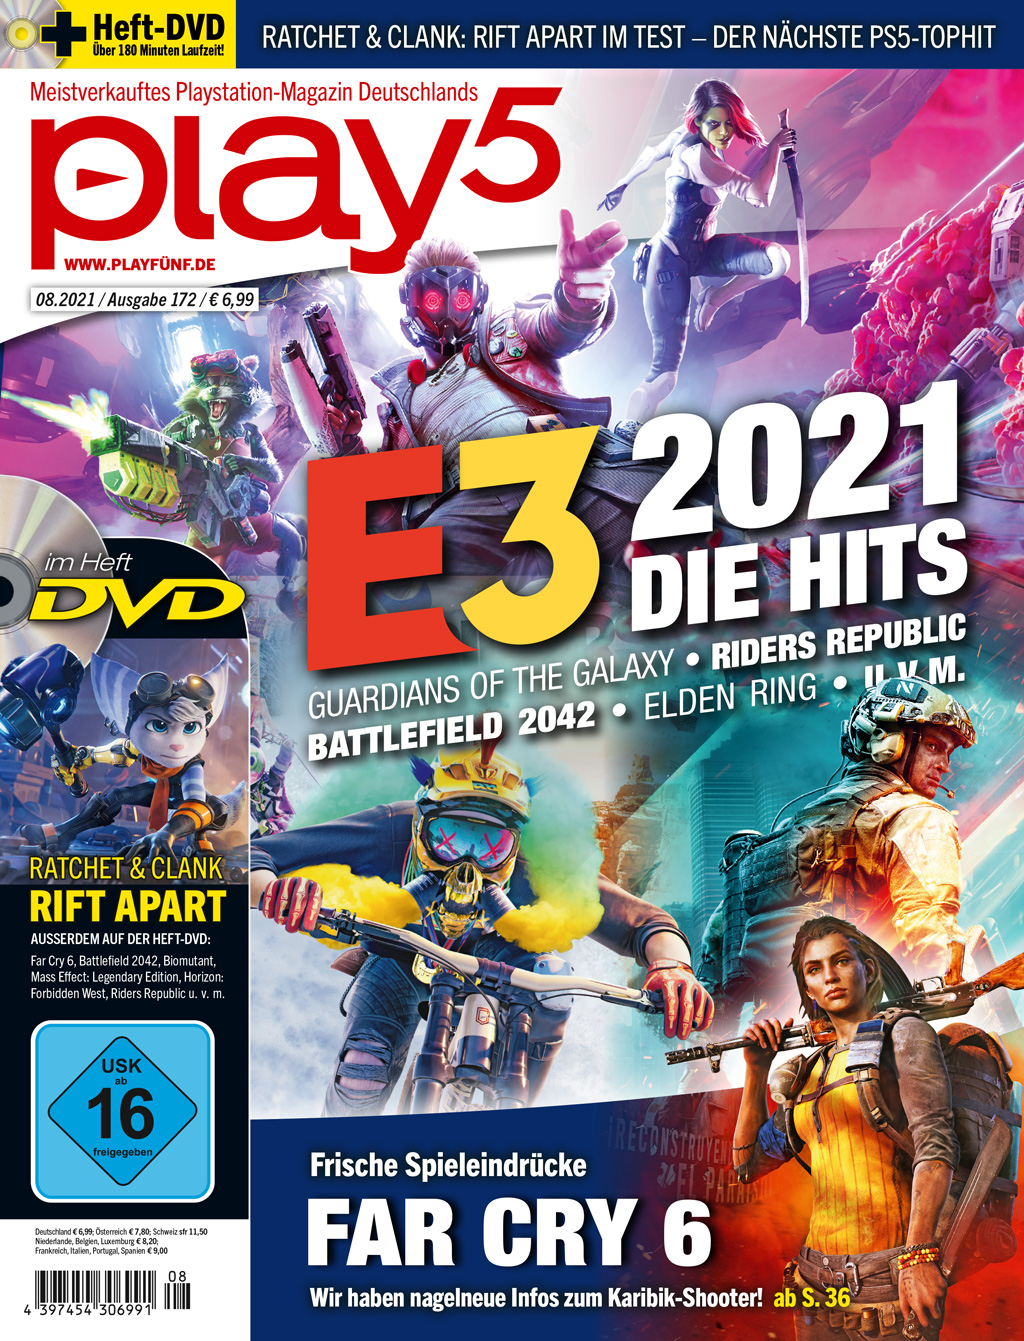 play5 08/21 with a large E3 series, test on Ratchet & Clank and much more. m.